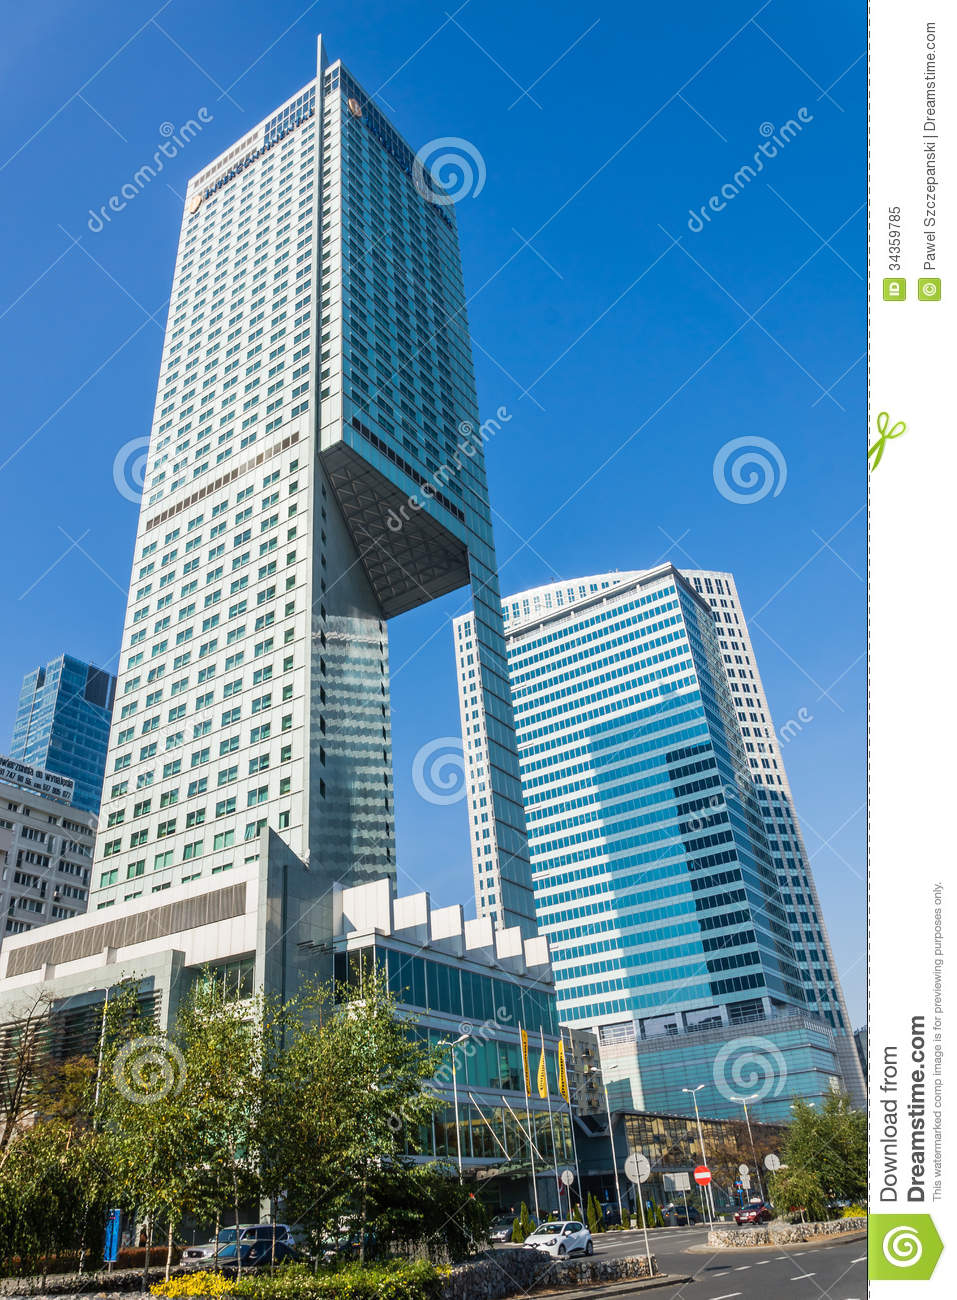 Intercontinental hotel in warsaw editorial image image for Top design hotels poland